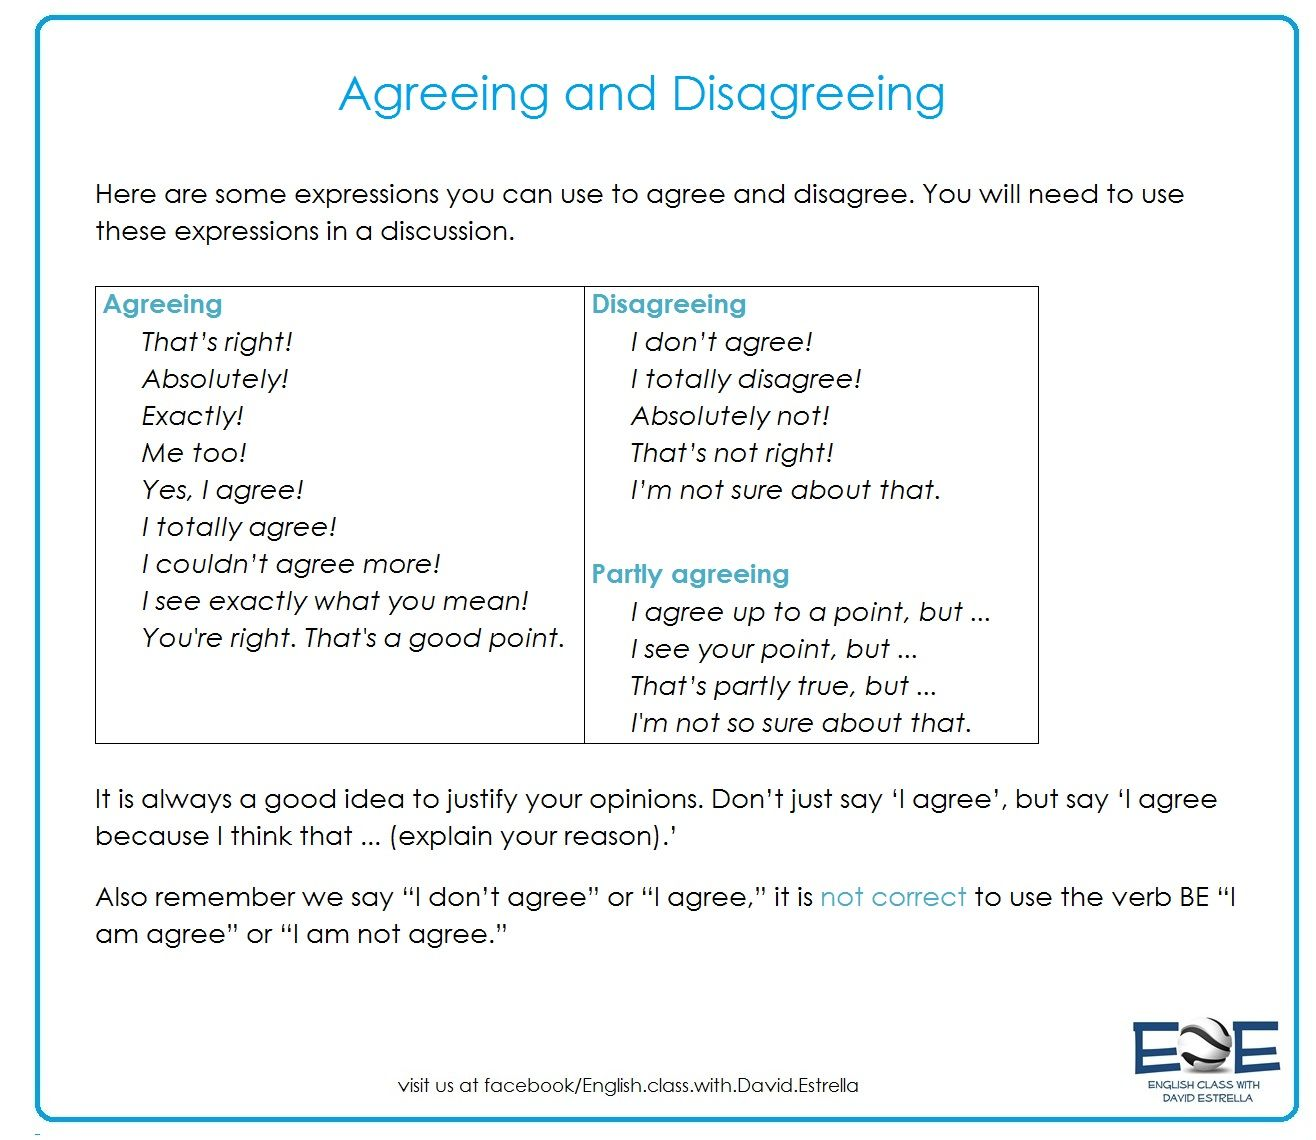 This One Is About Agreeing And Disagreeing With A